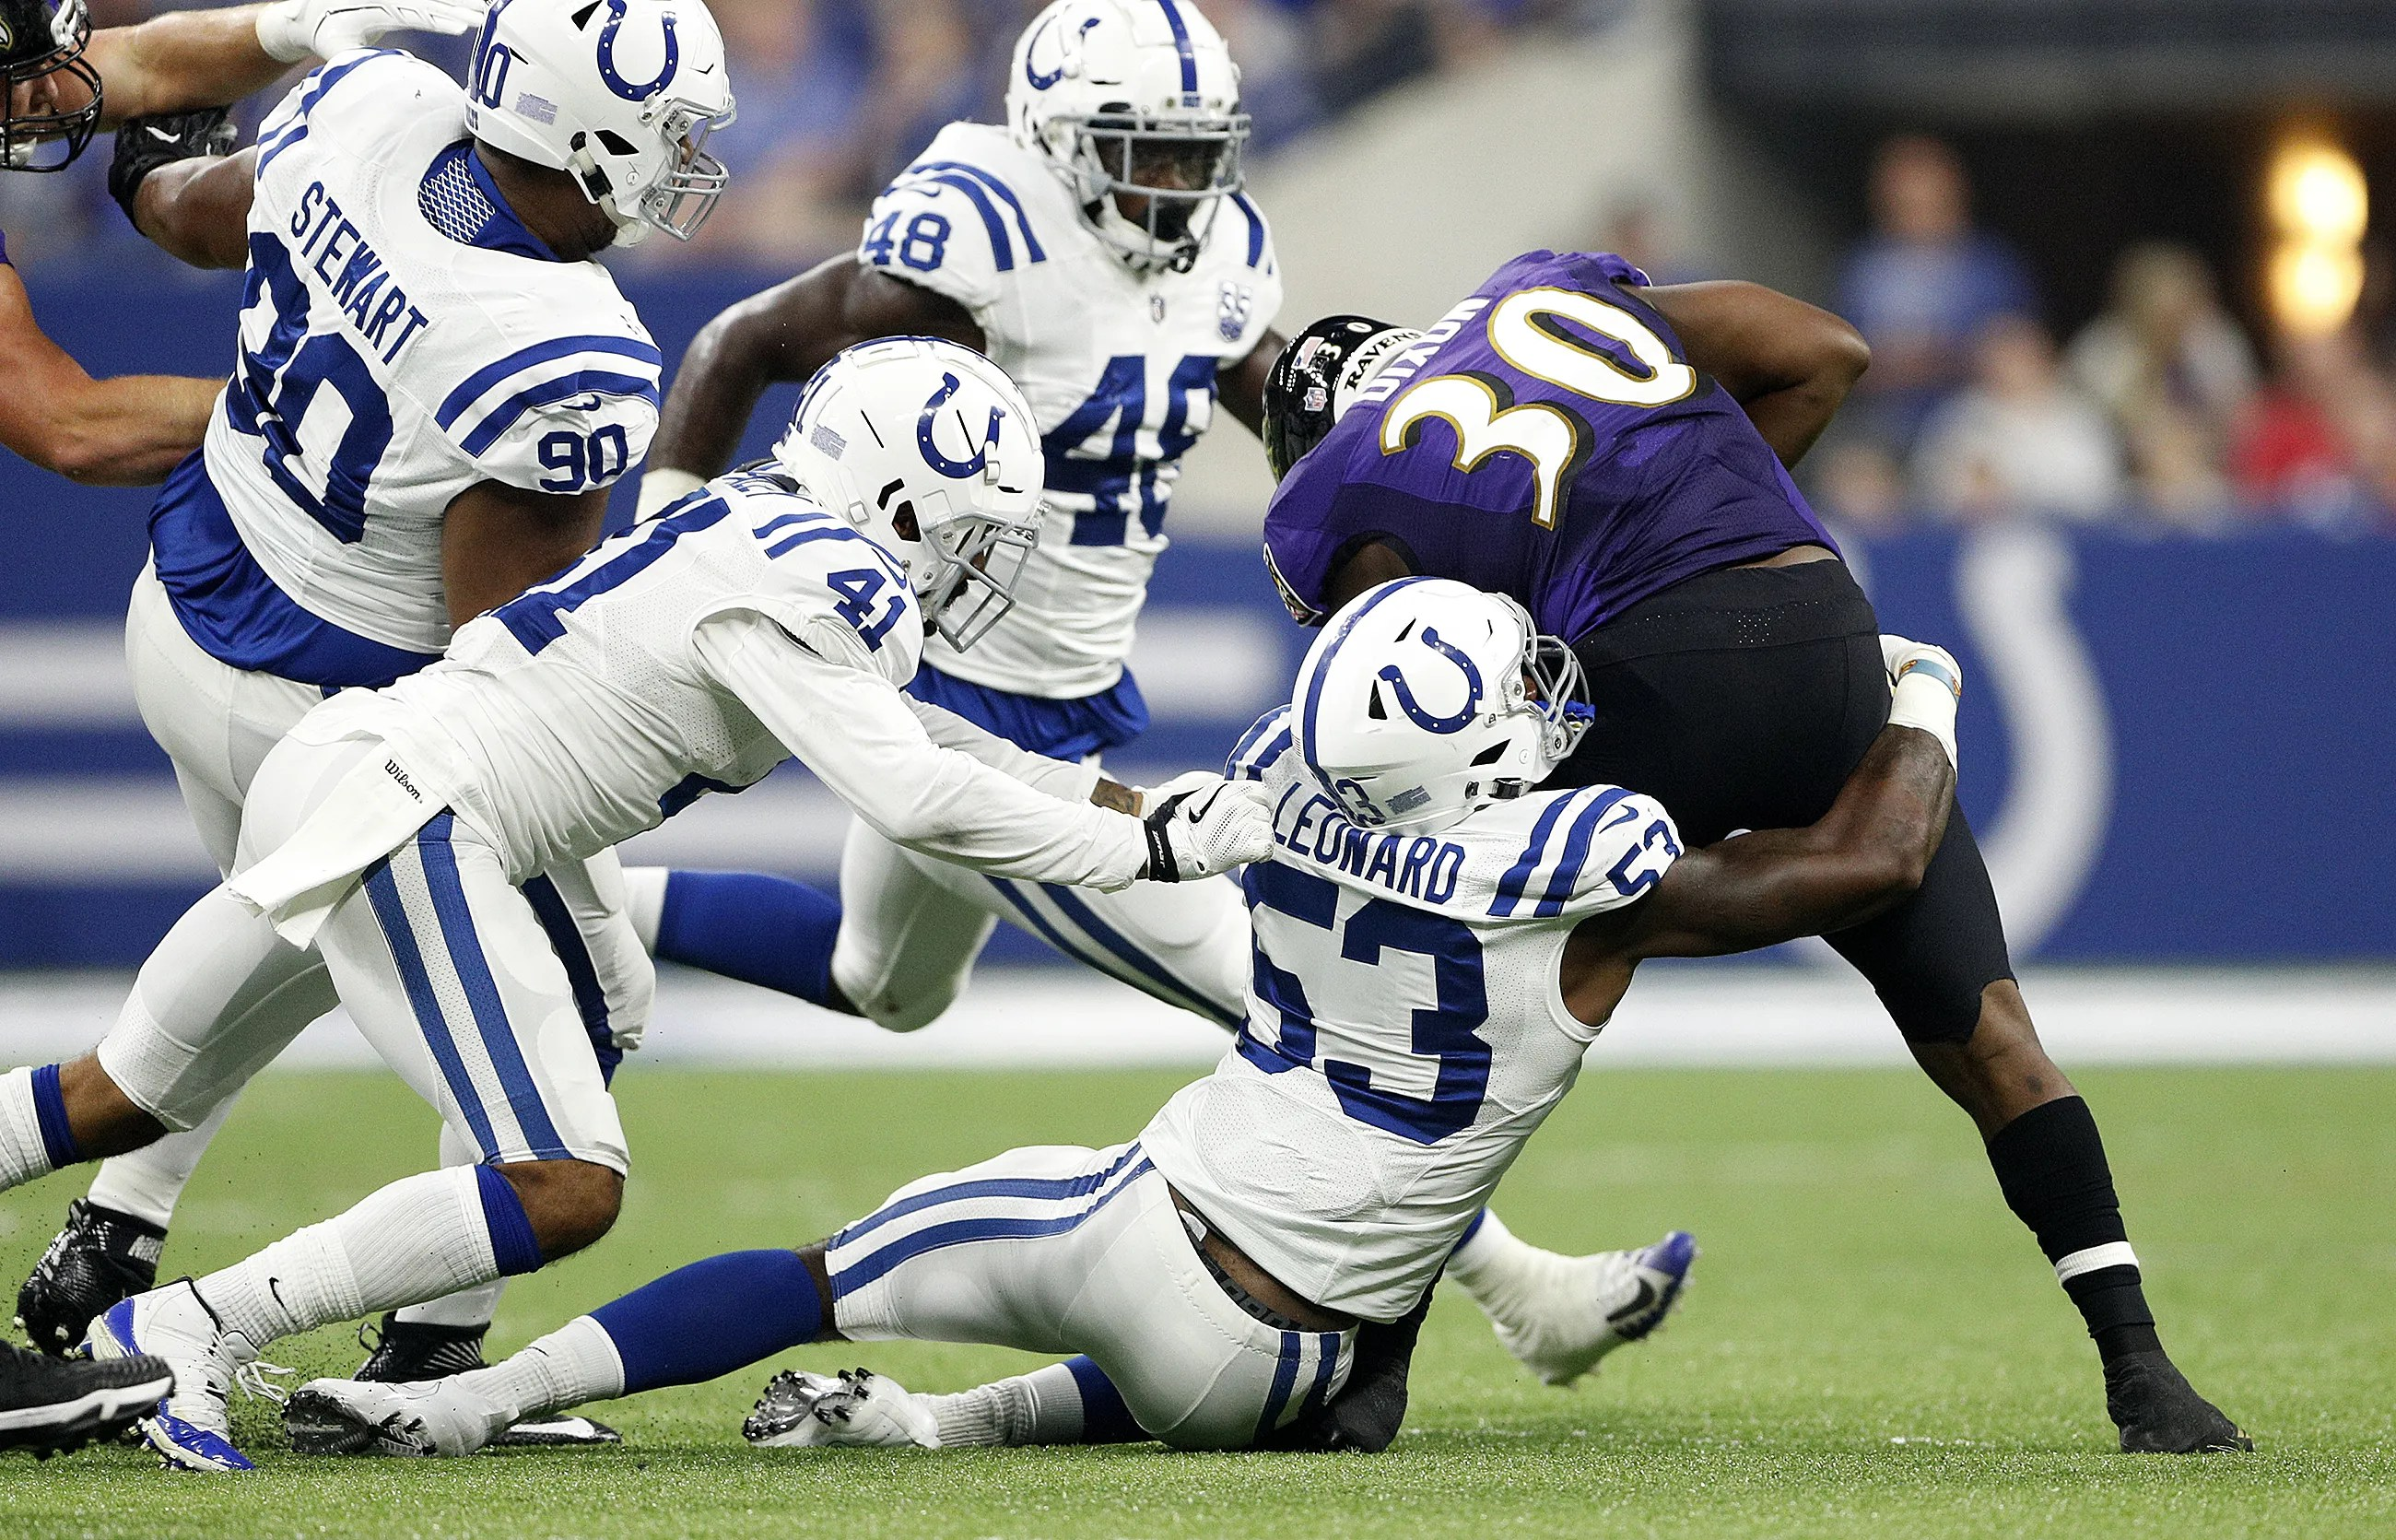 Rookie darius leonard cements starting role in colts  linebacker corps also indianapolis depth chart likely starter rh indystar